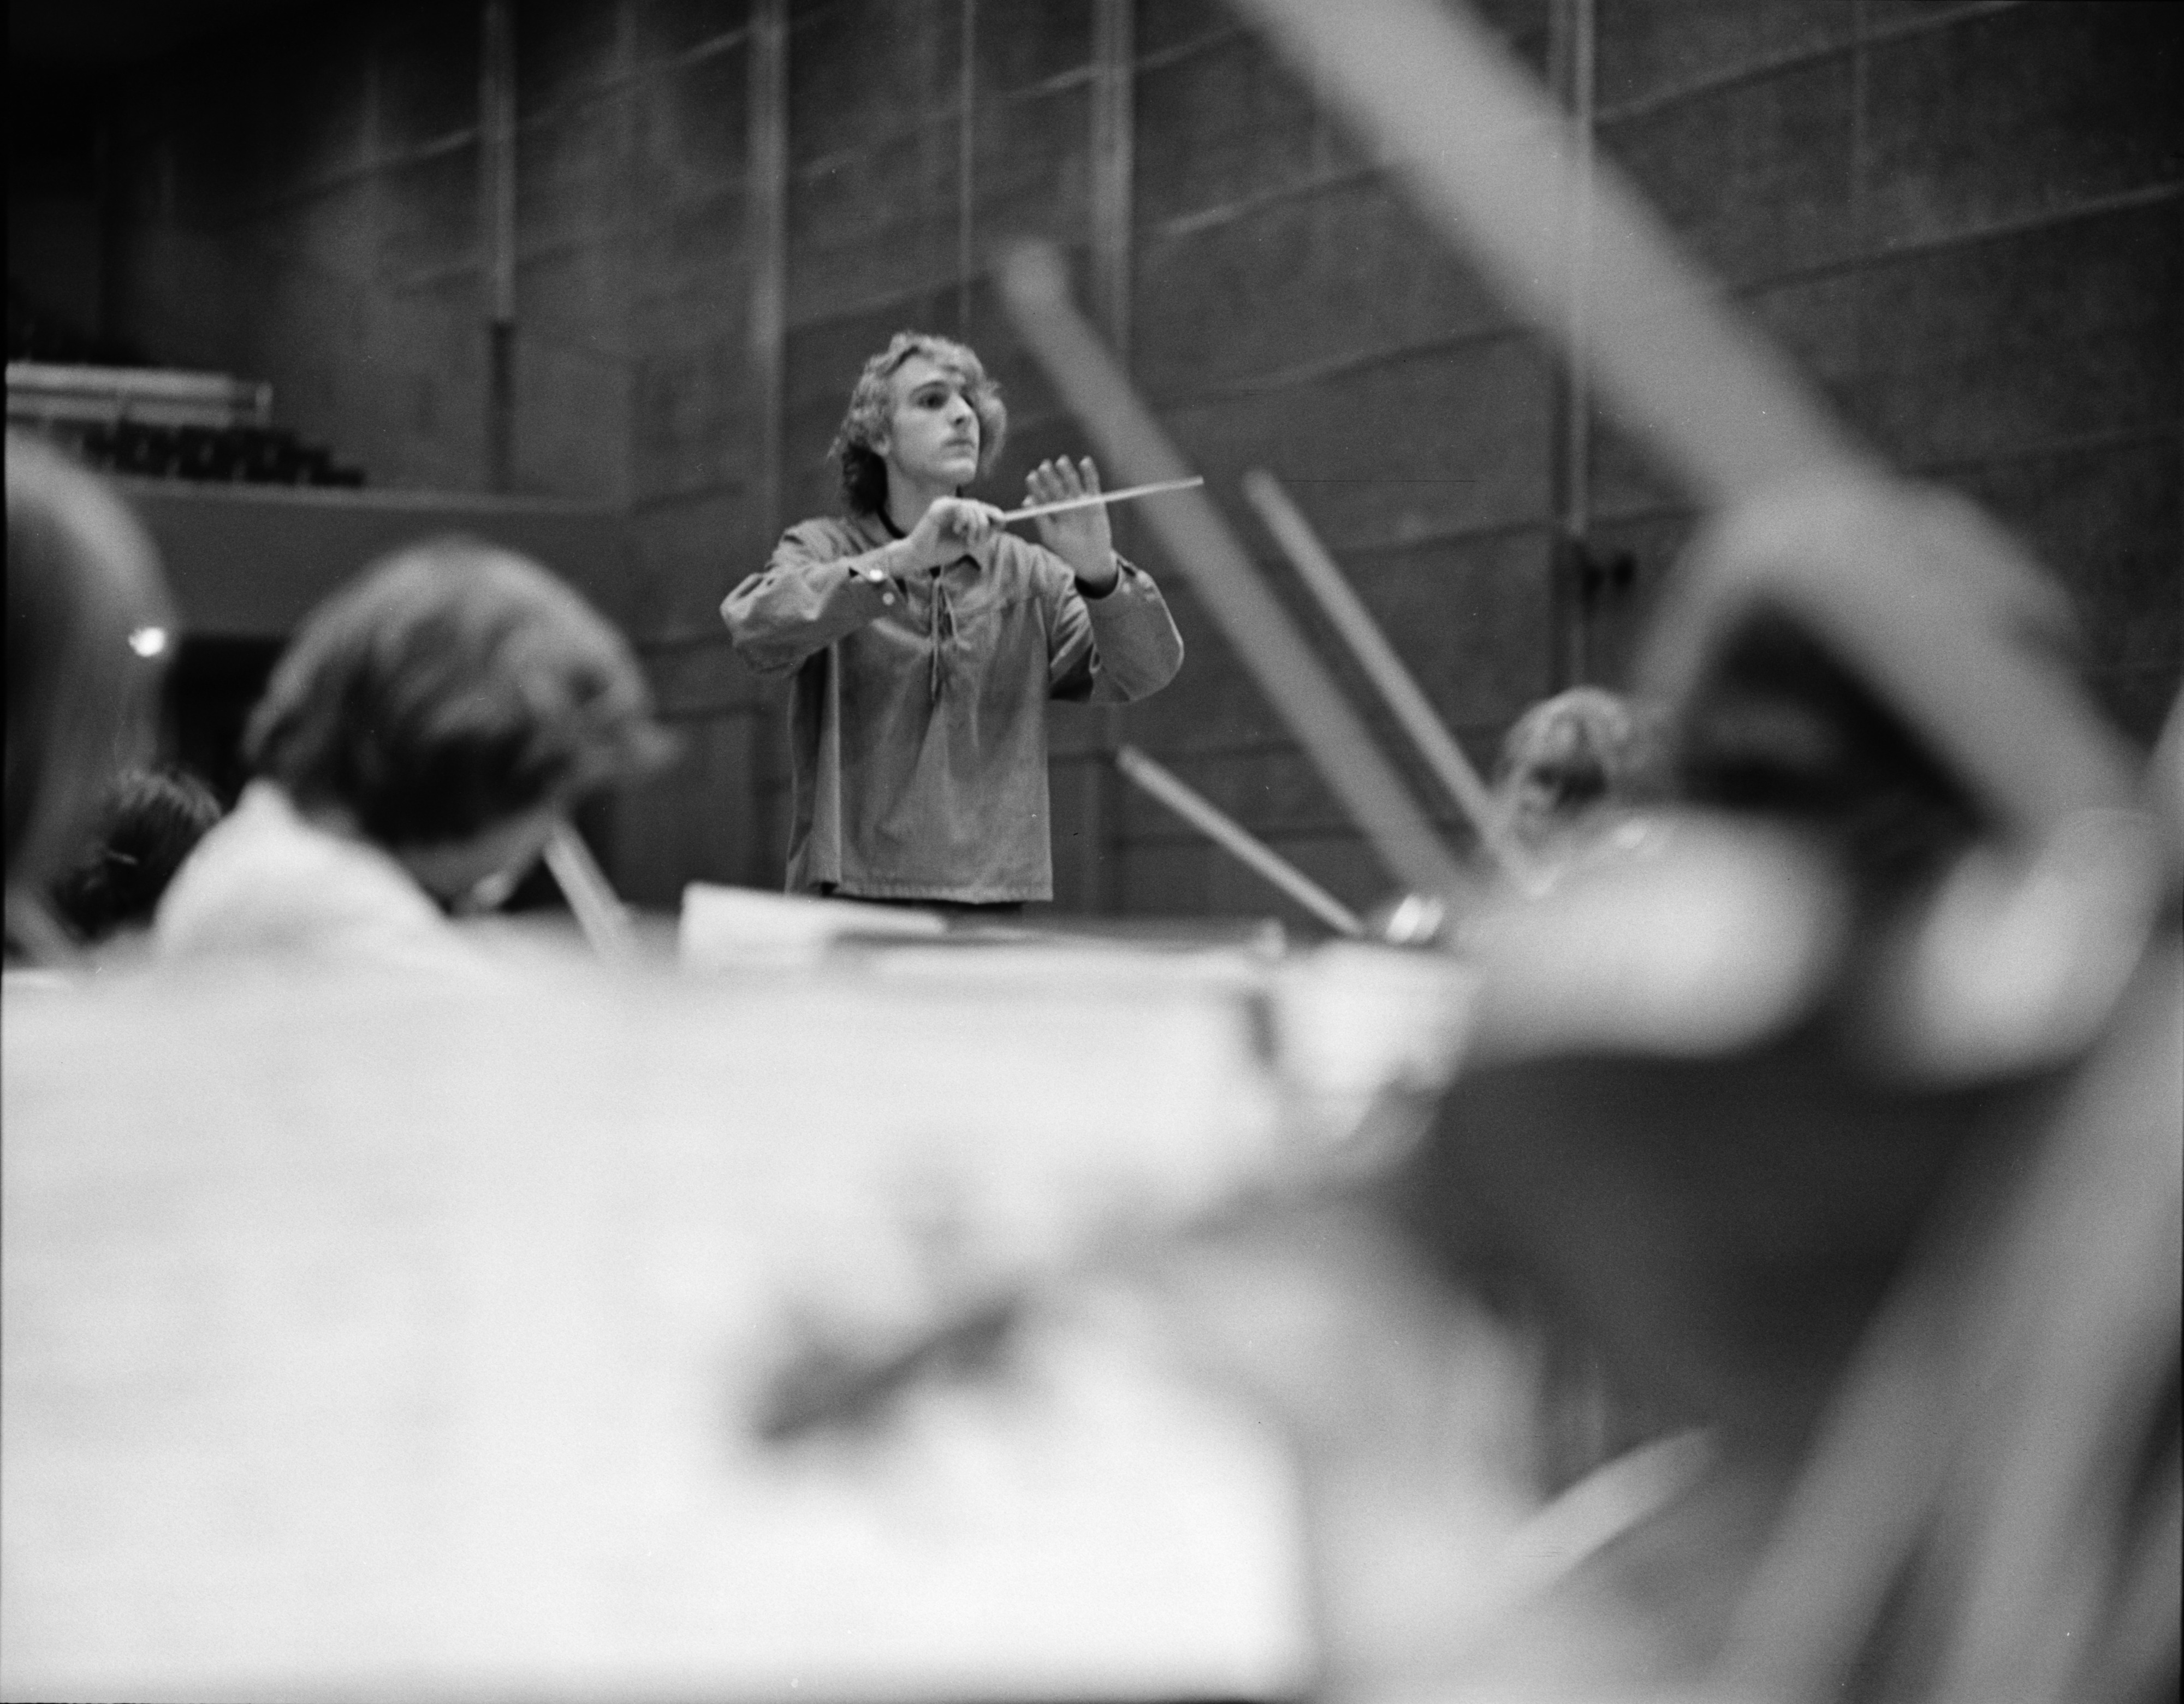 Pioneer High School Student Composer Philip Stoll Conducting, November 1973 image